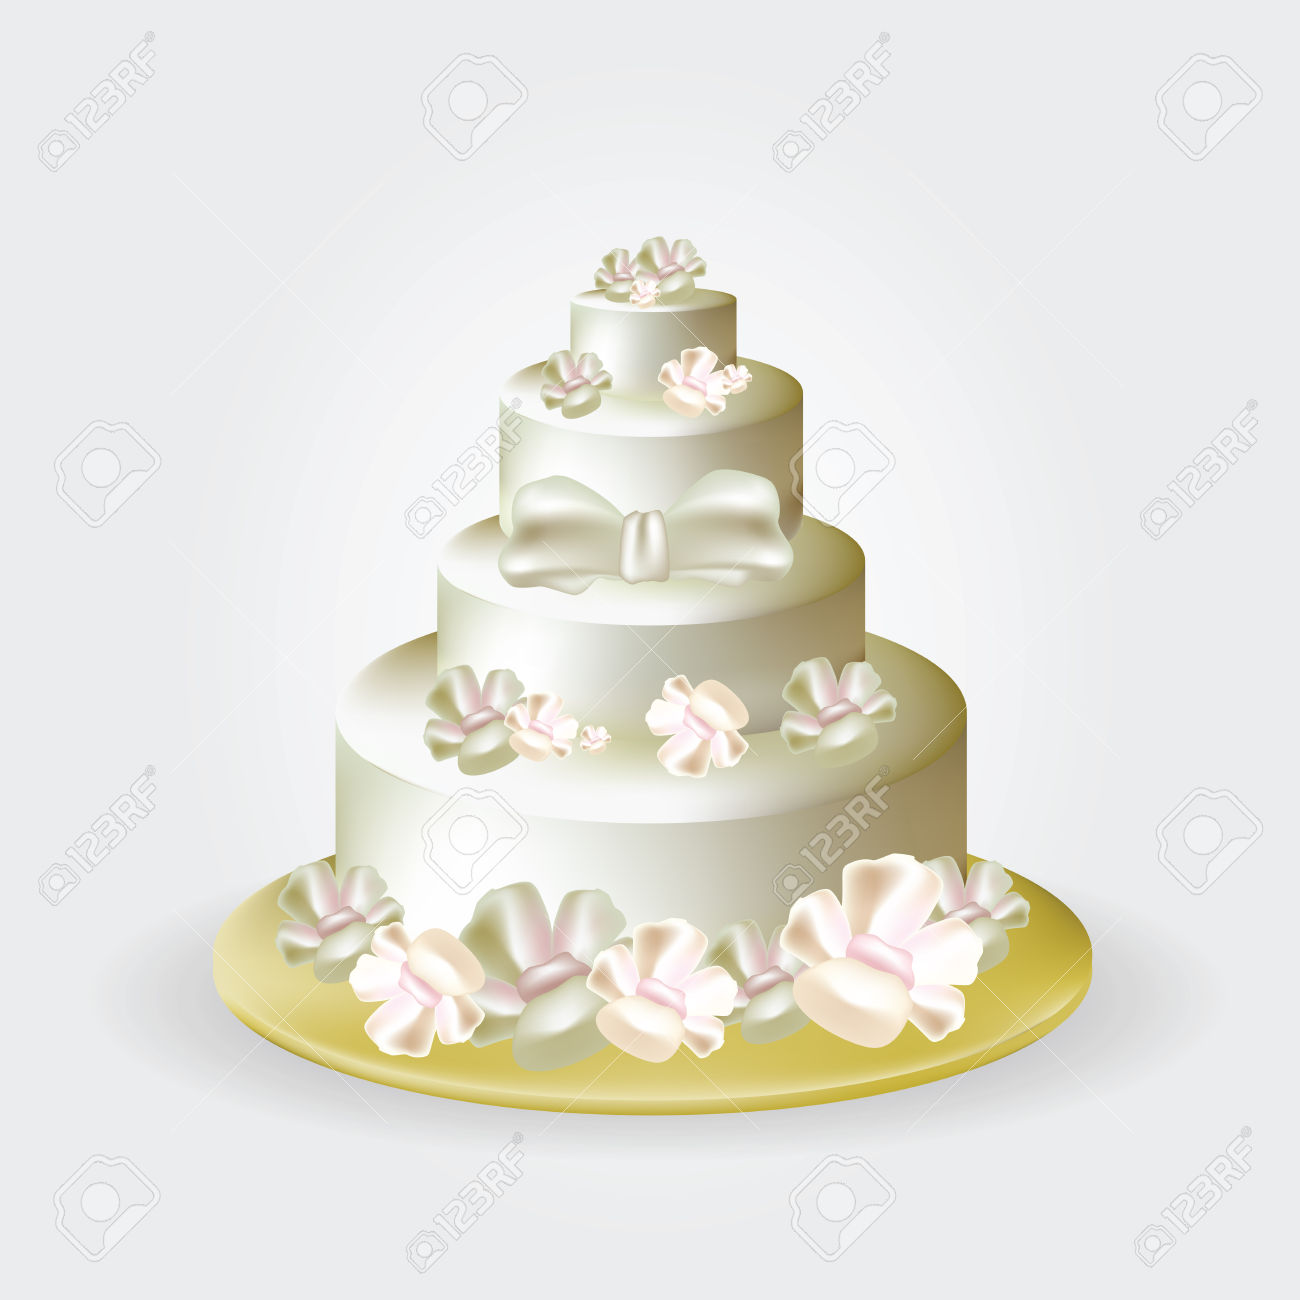 Wedding Cake Clip Art Illustration Royalty Free Cliparts